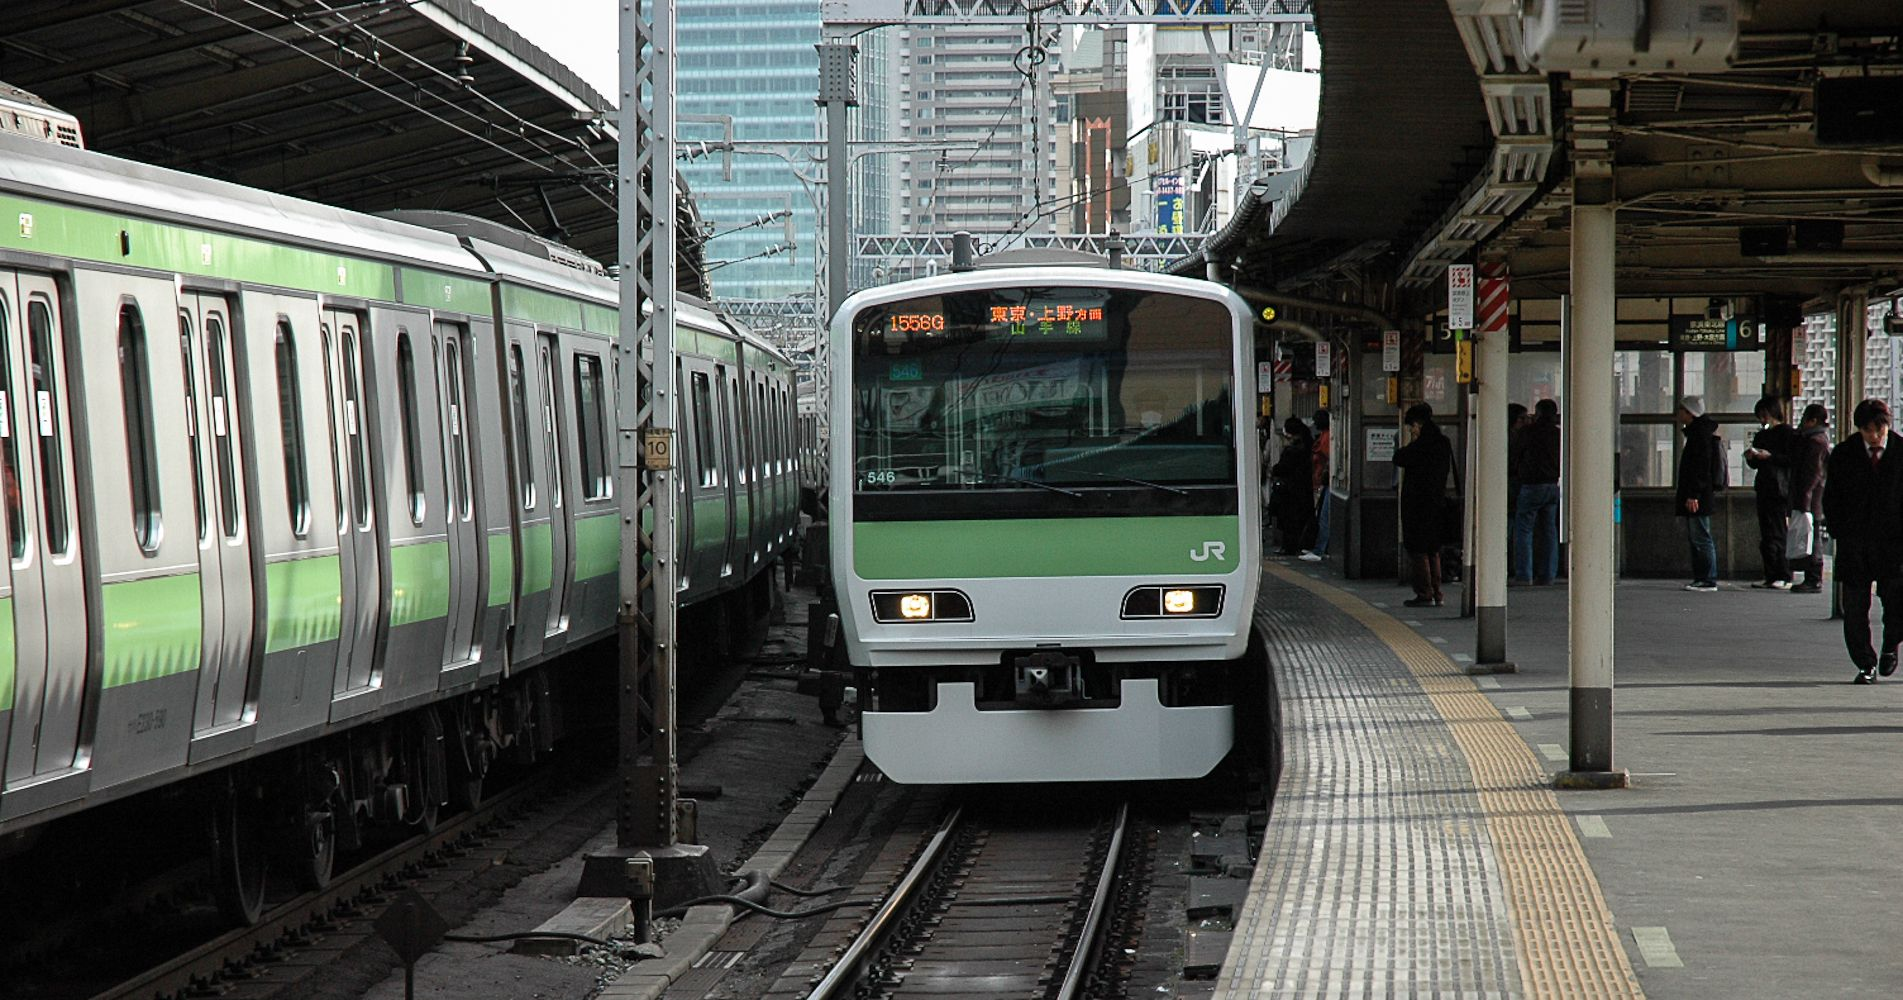 YAMANOTE-Line (East Japan Railway Company=JR East) It's a loop line that connected to all railway and subway lines in Tokyo.